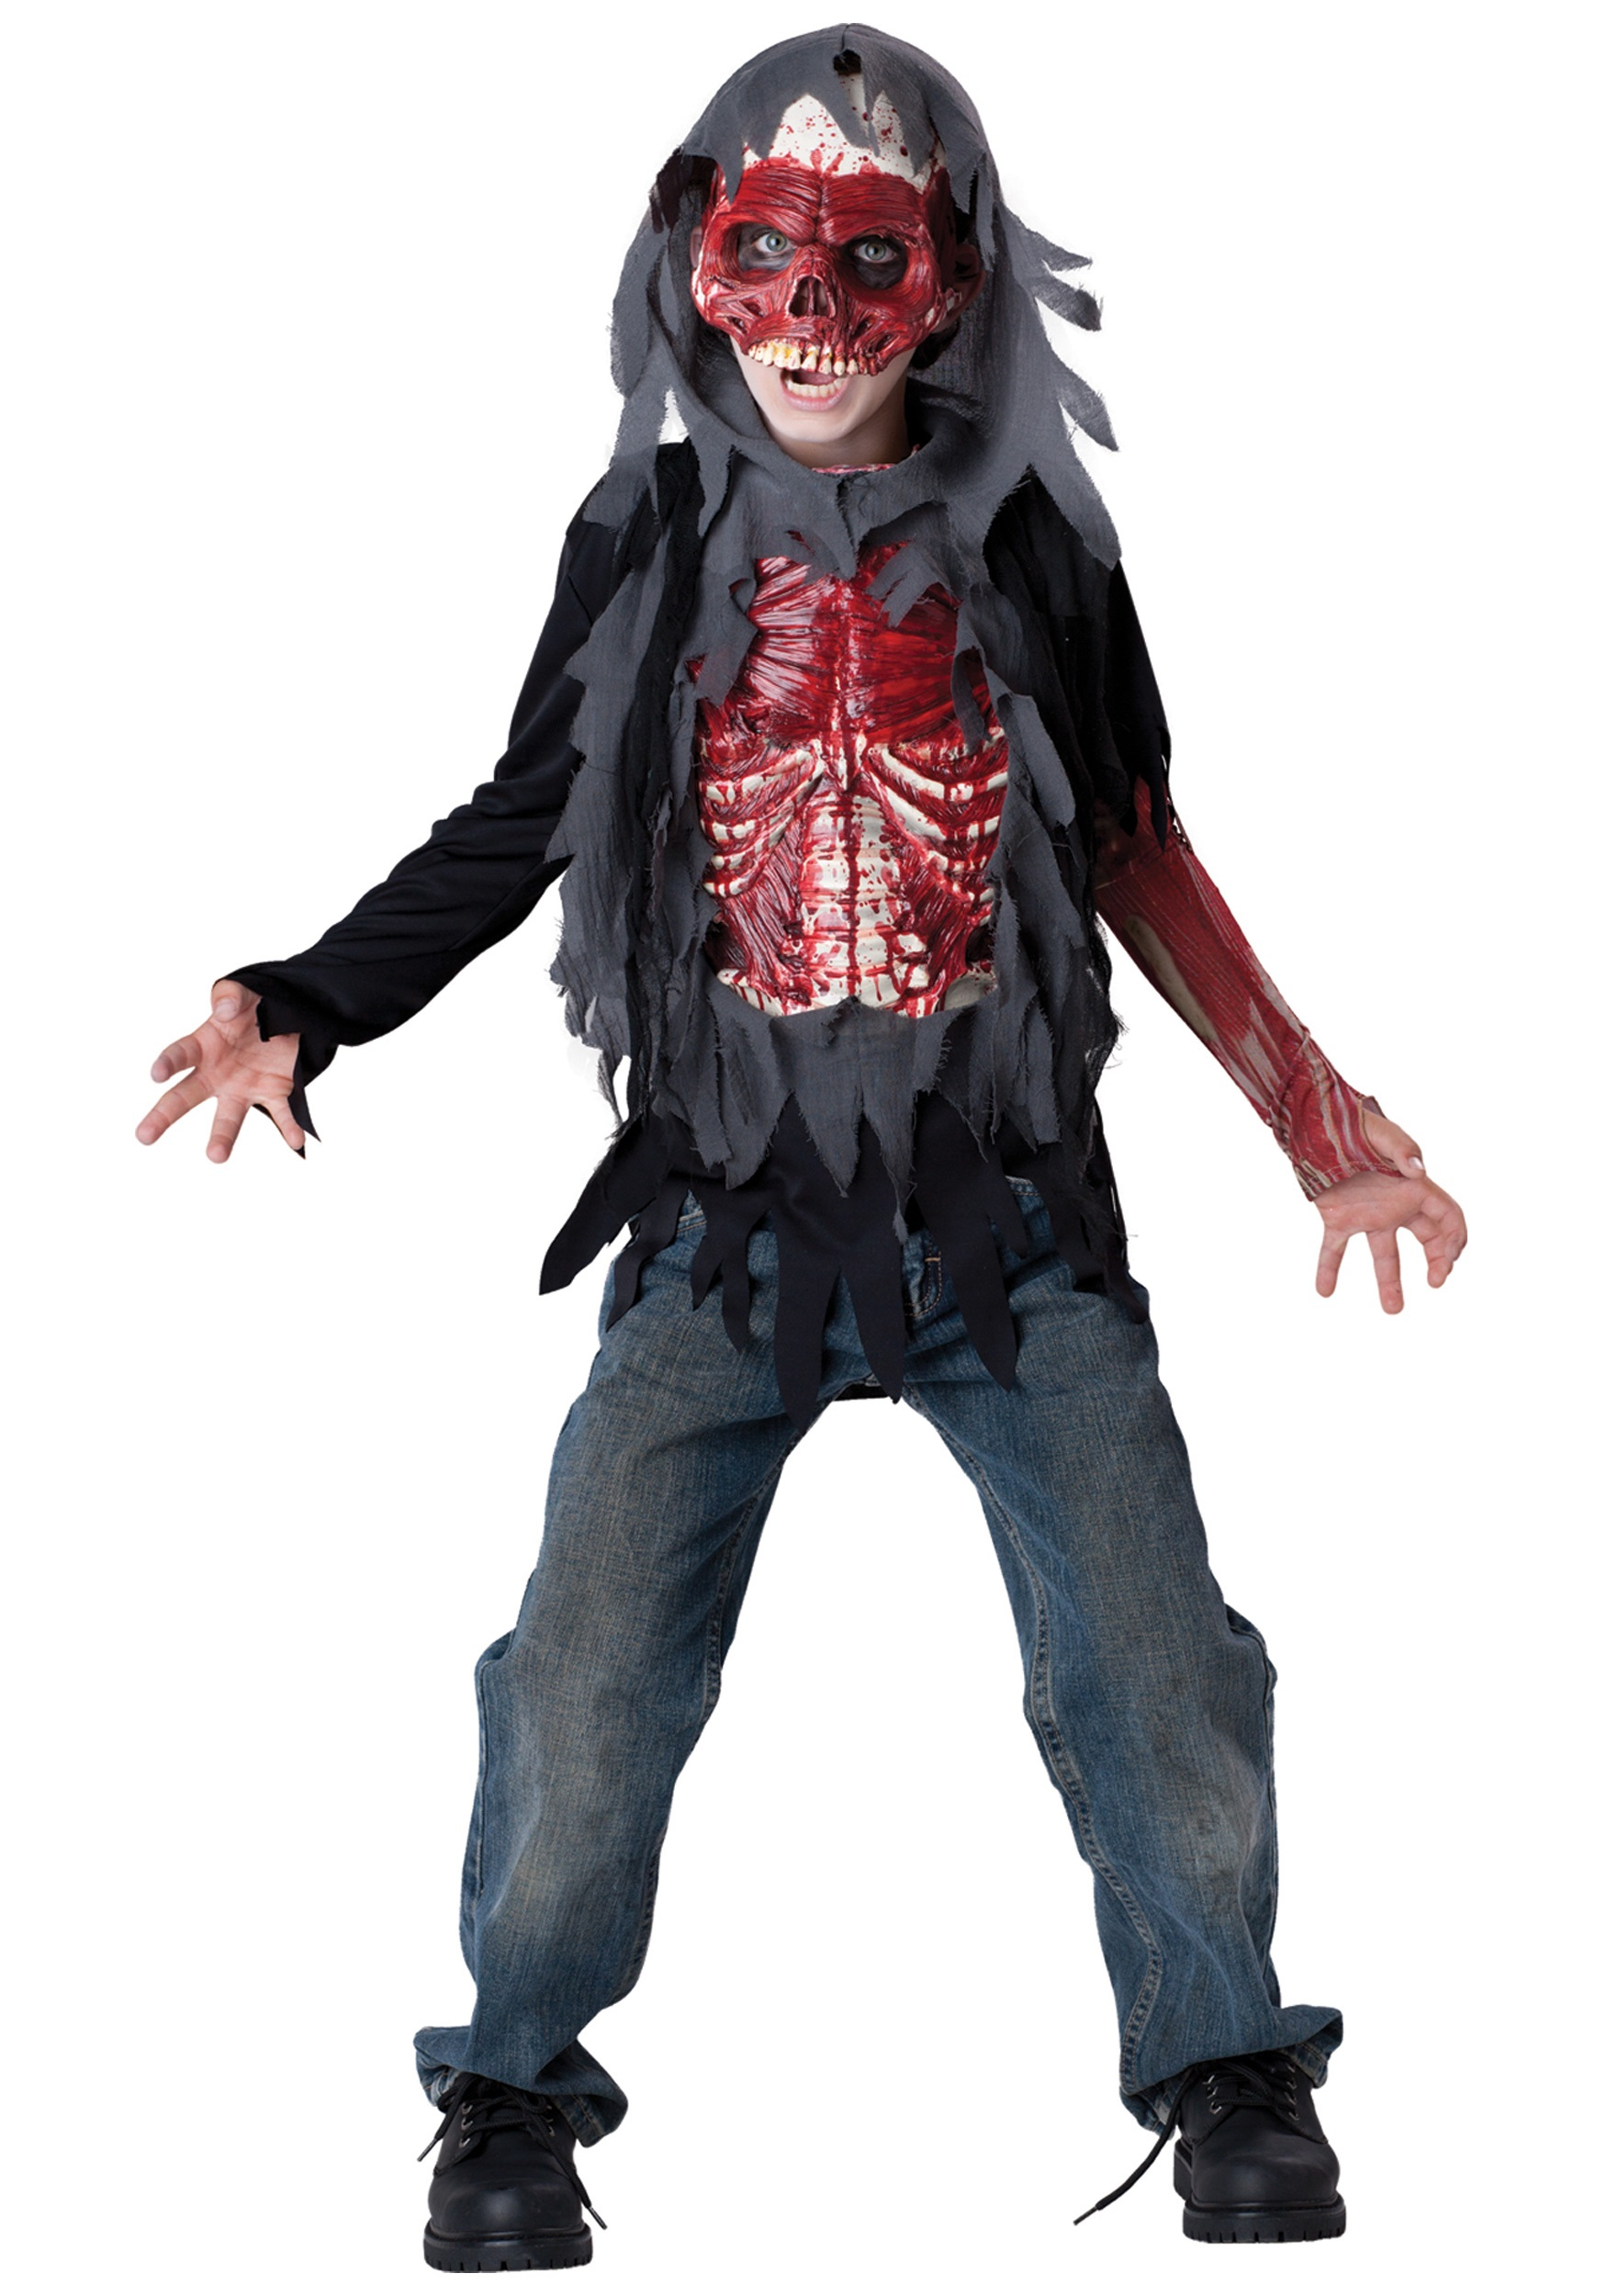 Kids Skinned Alive Zombie Costume - Halloween Costume Ideas 2016